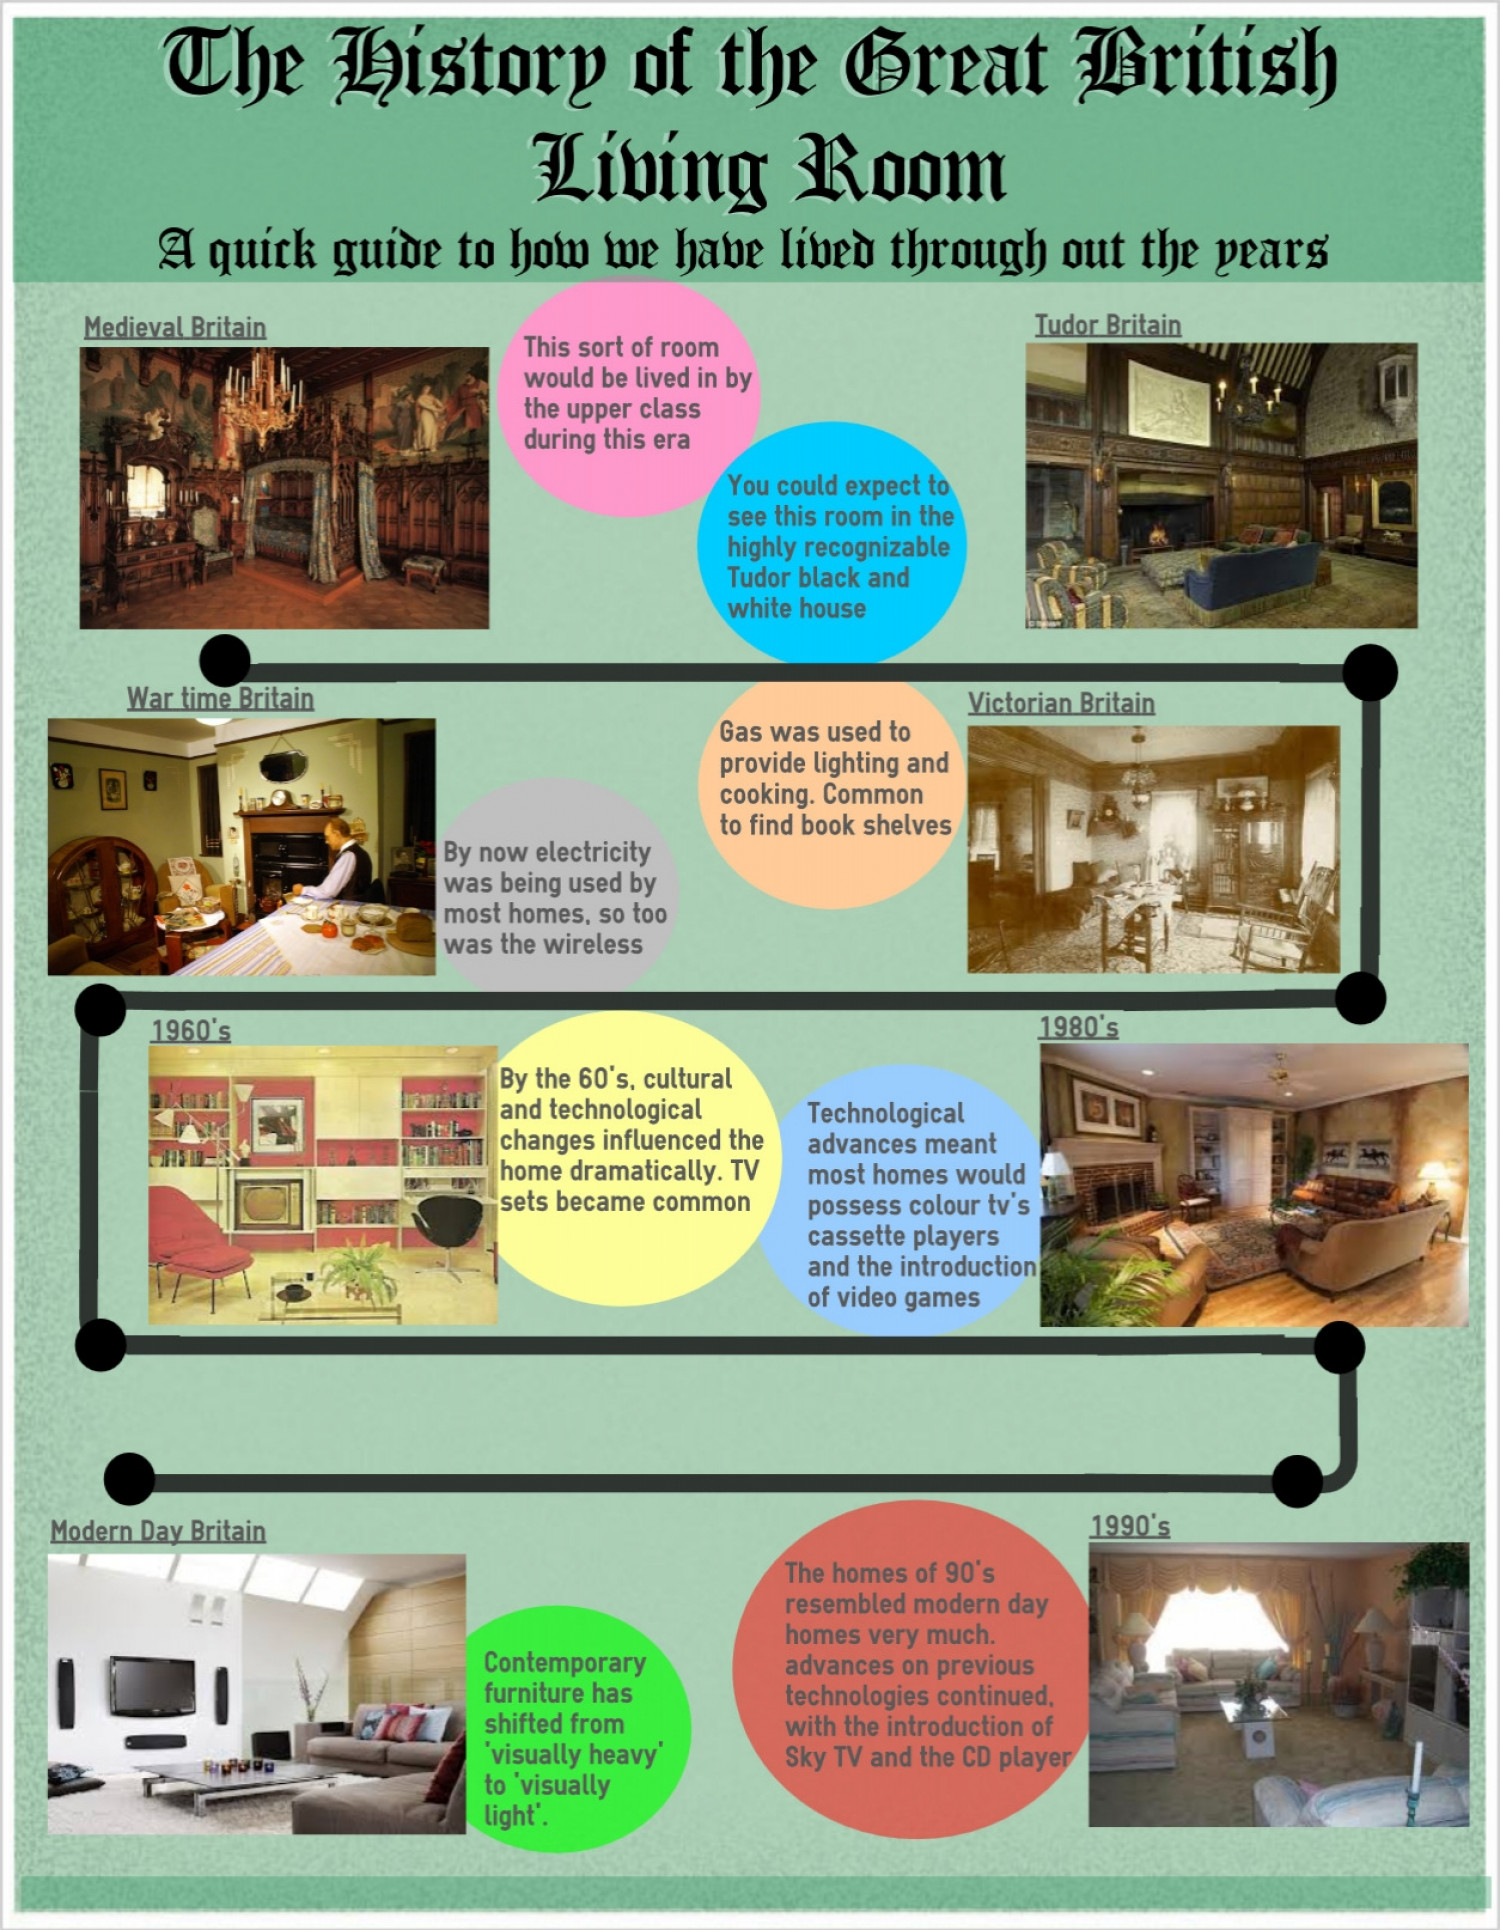 The history of the Great British living room Infographic